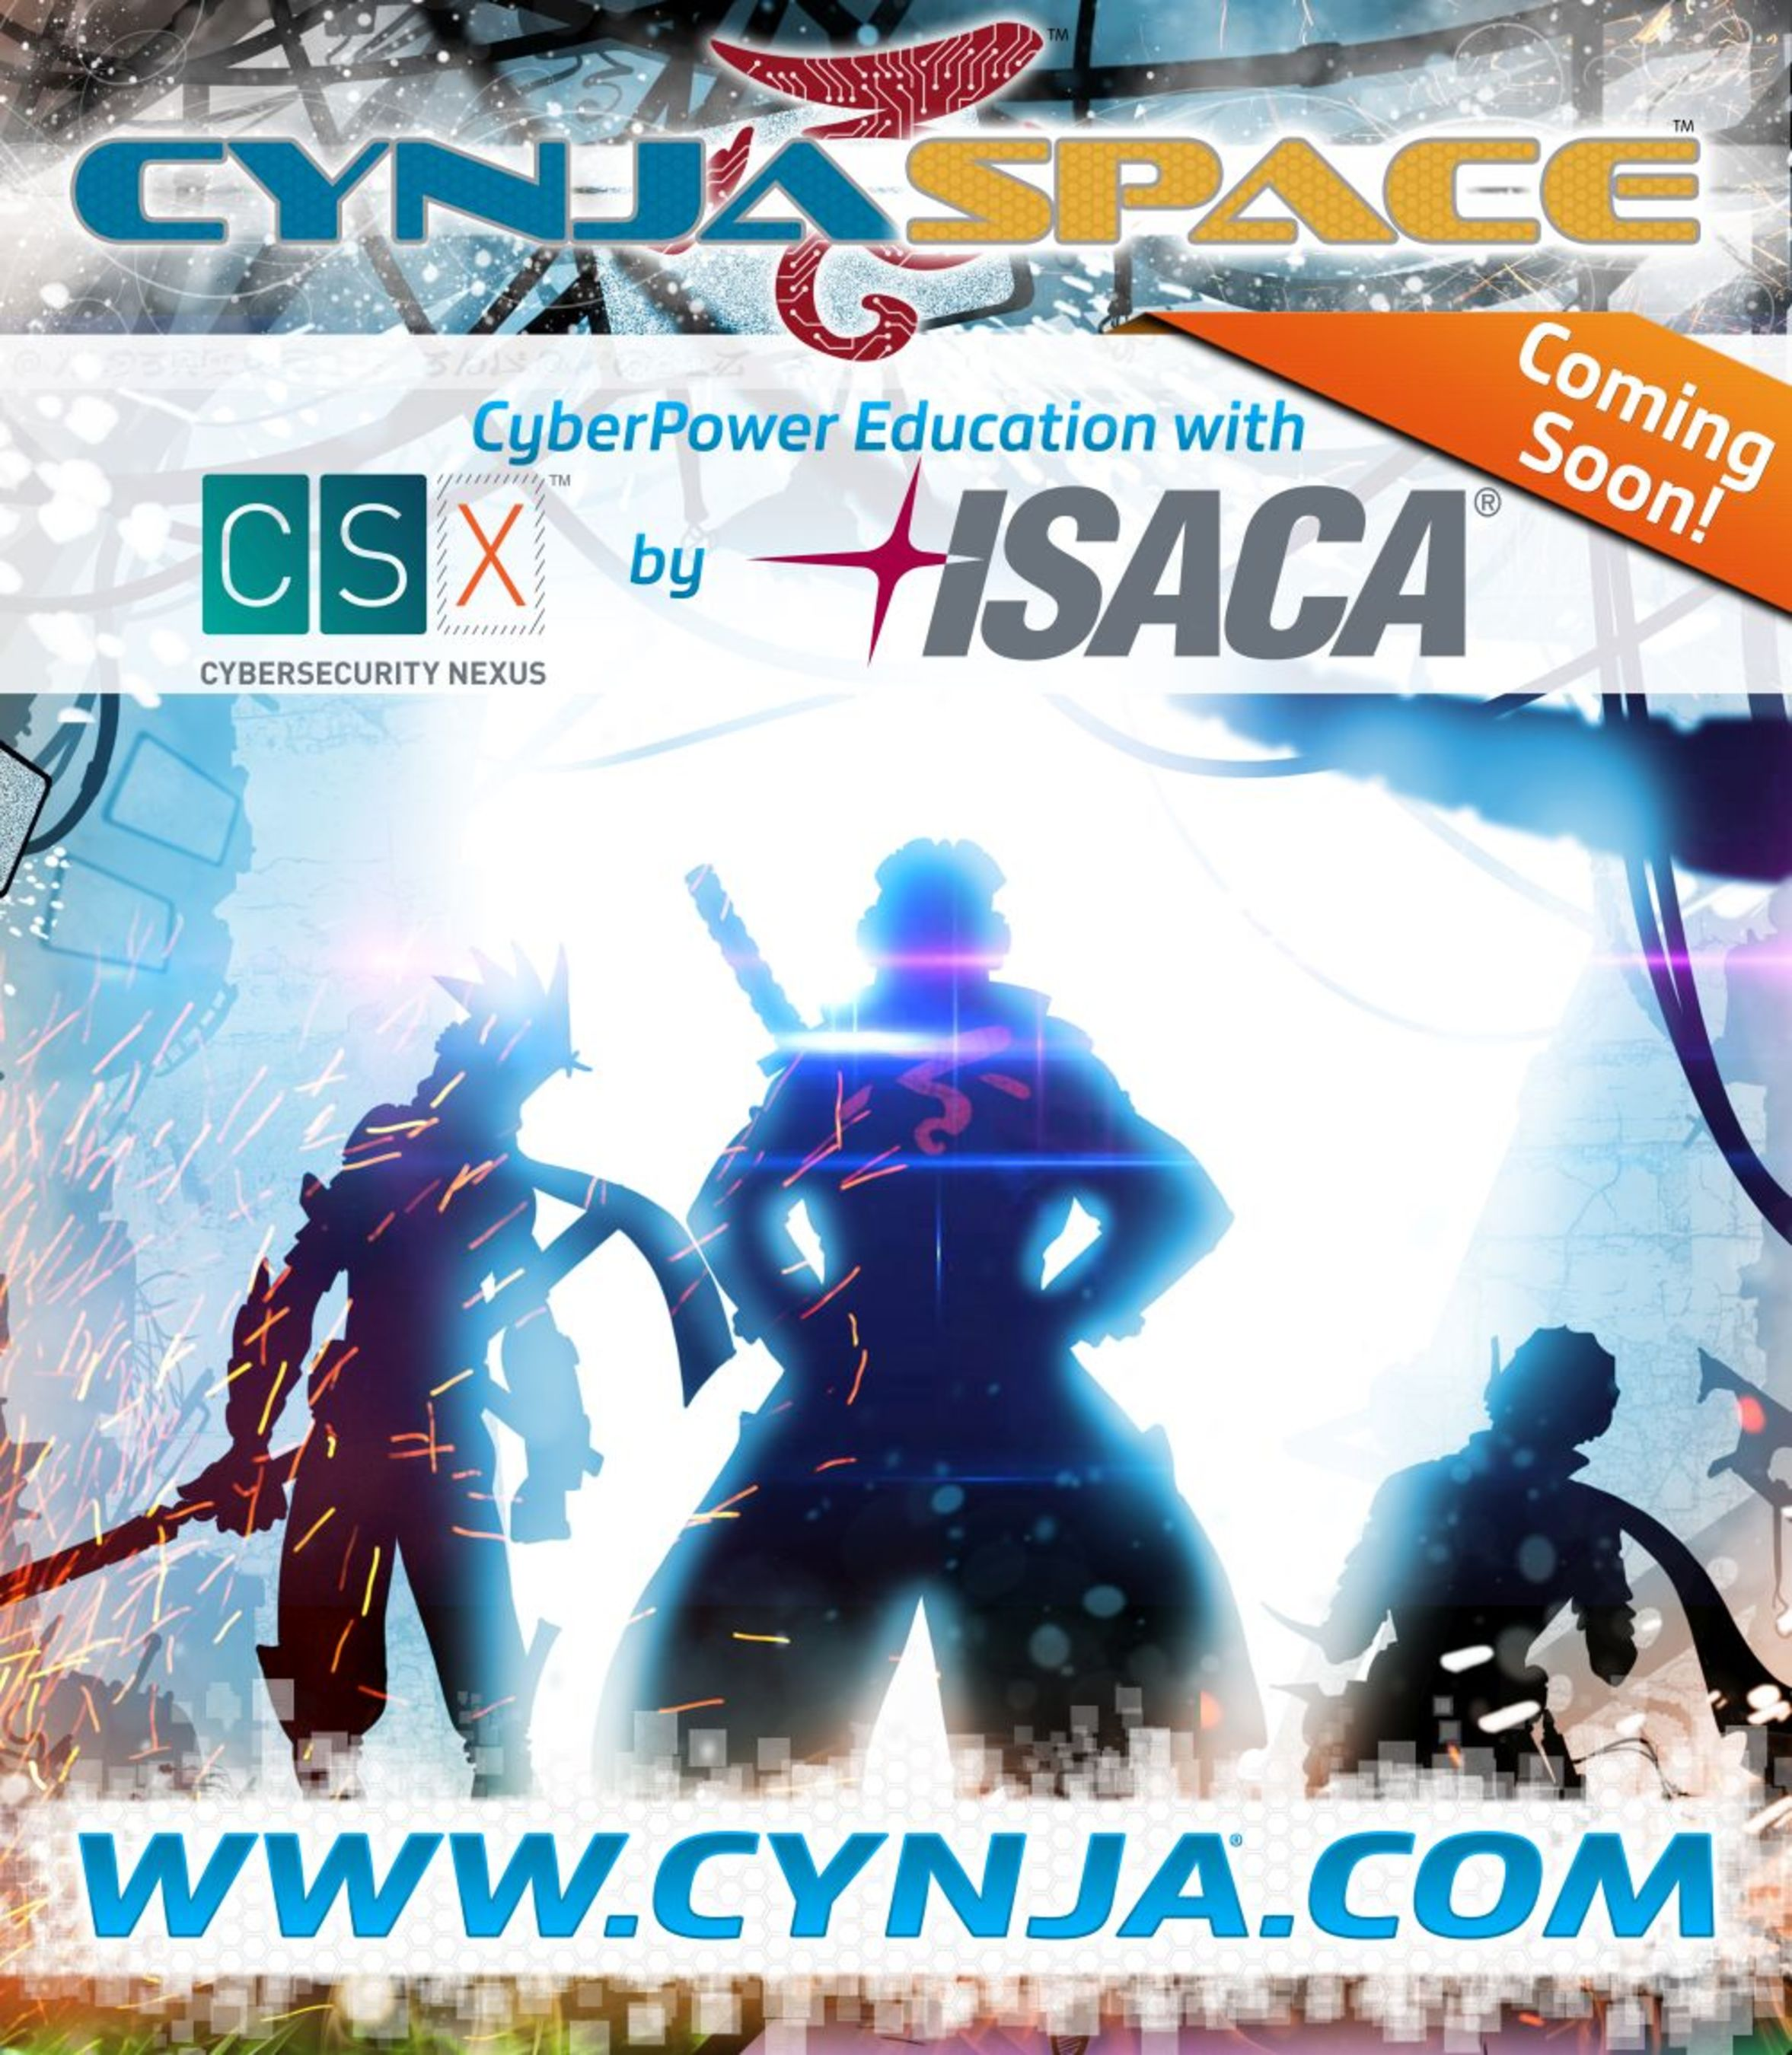 CynjaTech and ISACA Partner to Advance Cyber Education for Children and Families